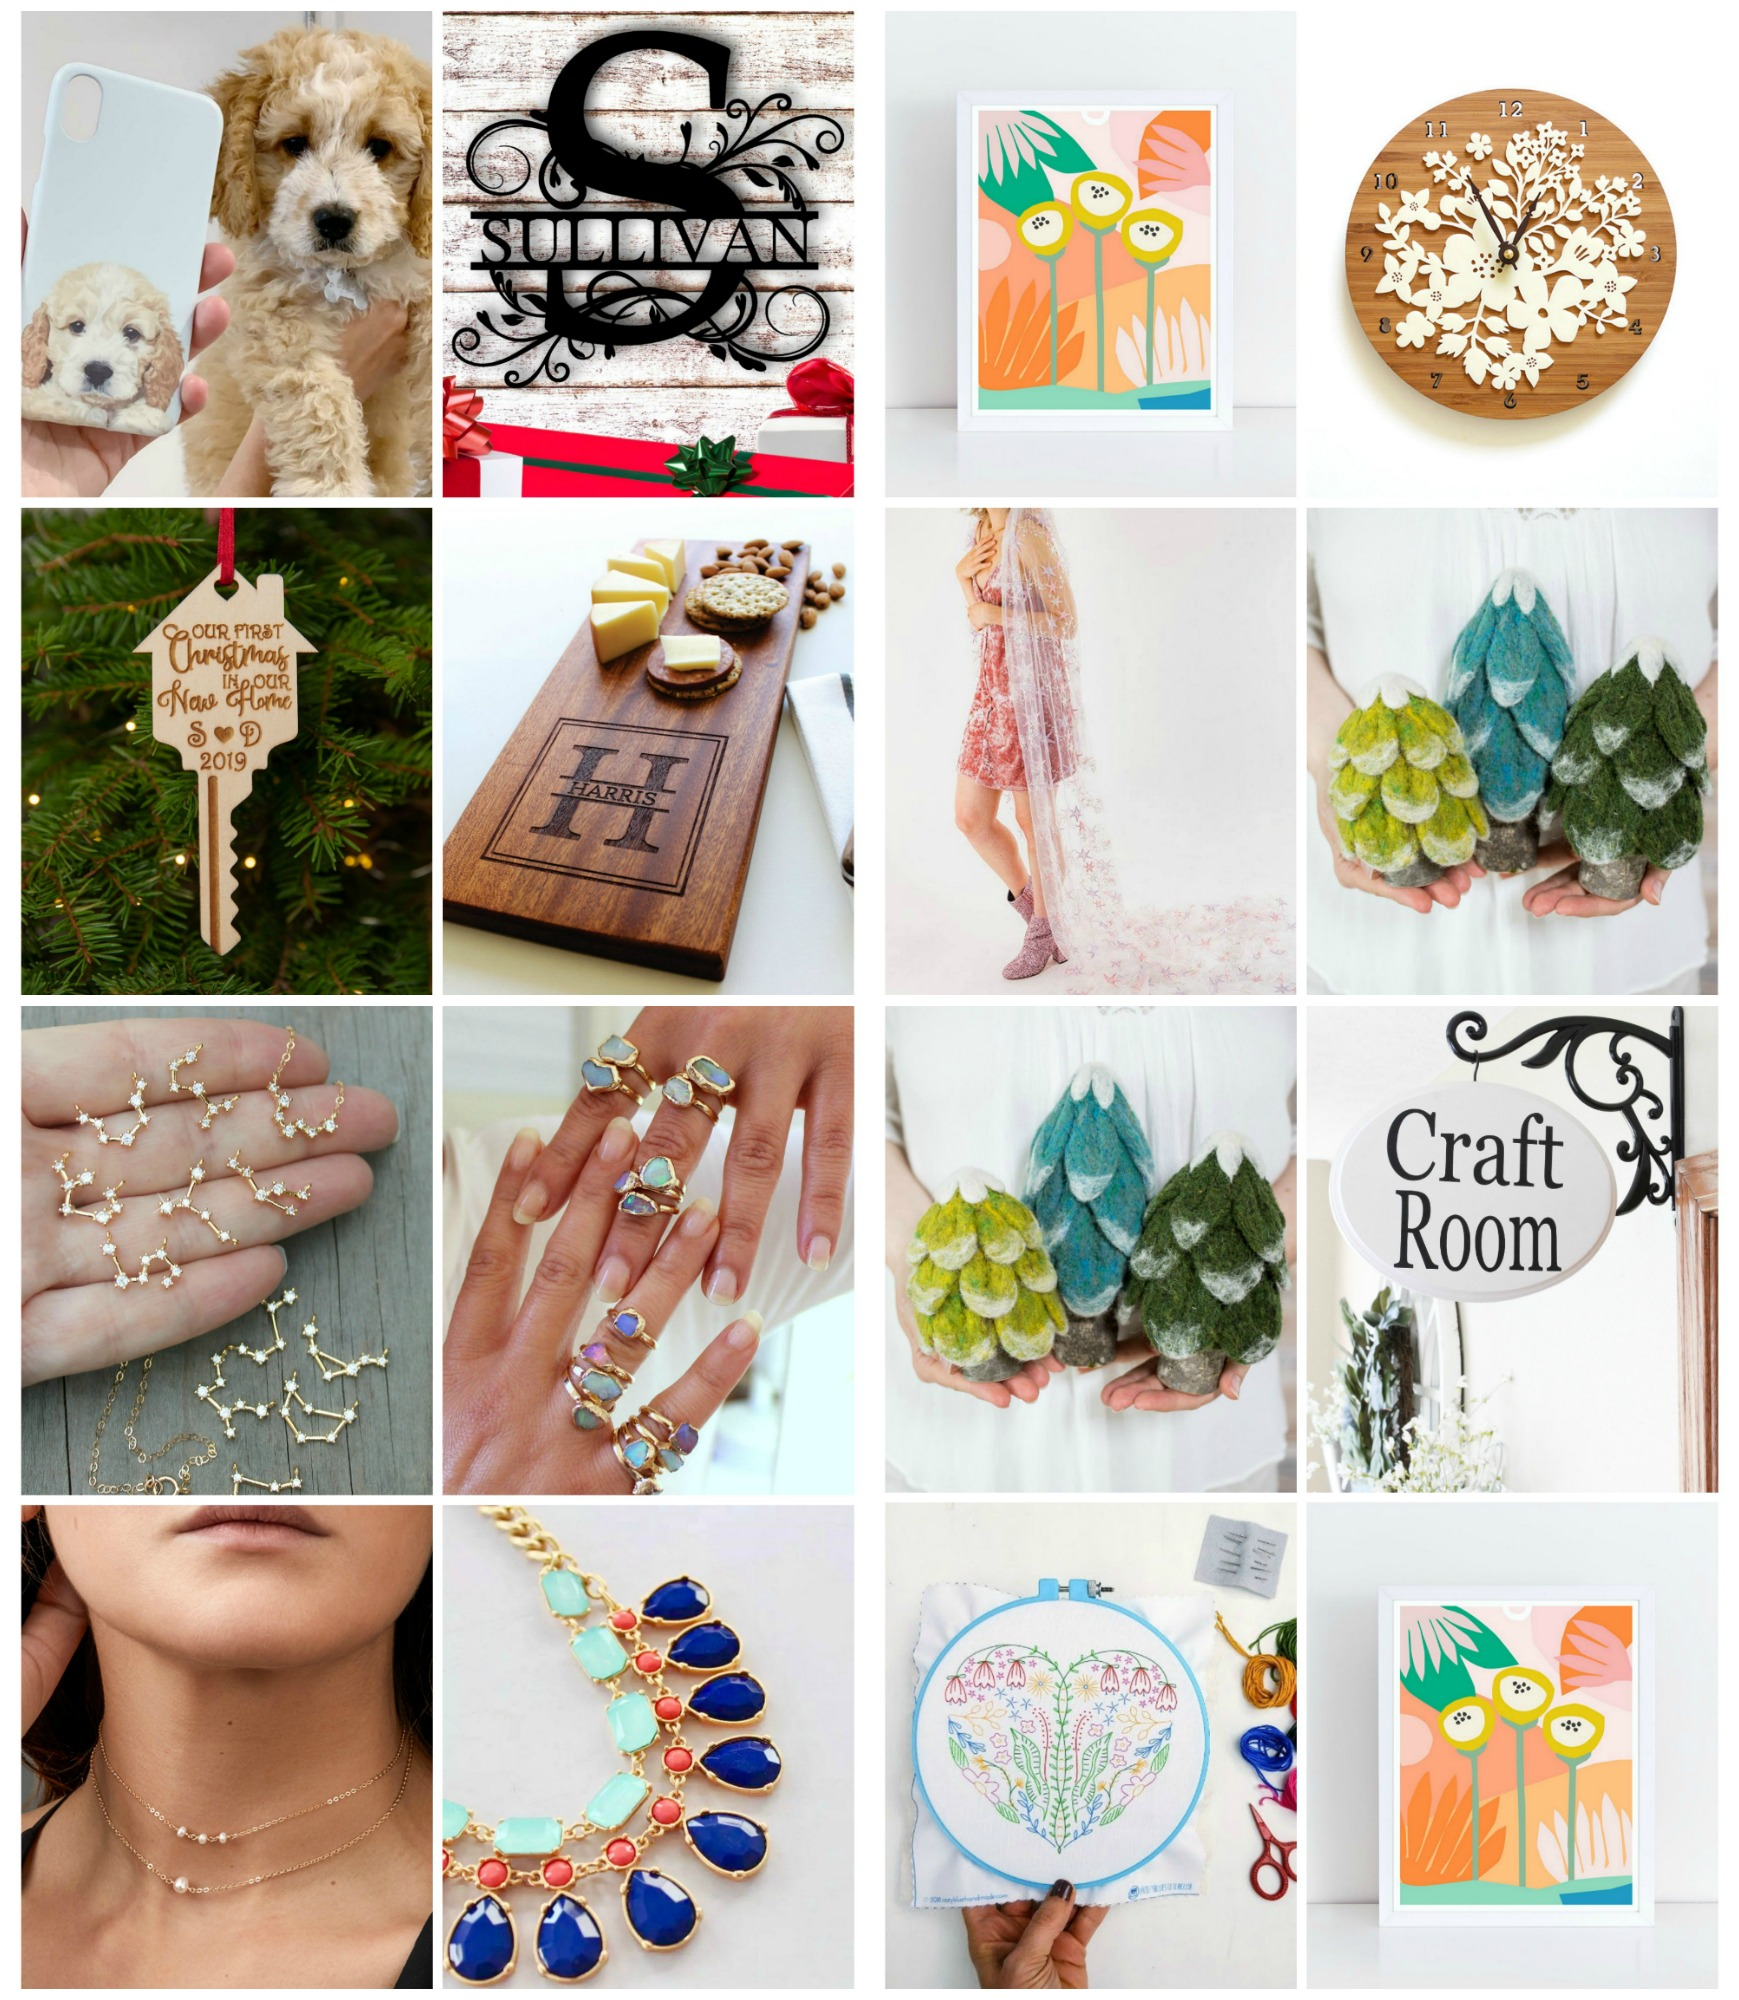 Best Etsy Shops for Christmas Gifts